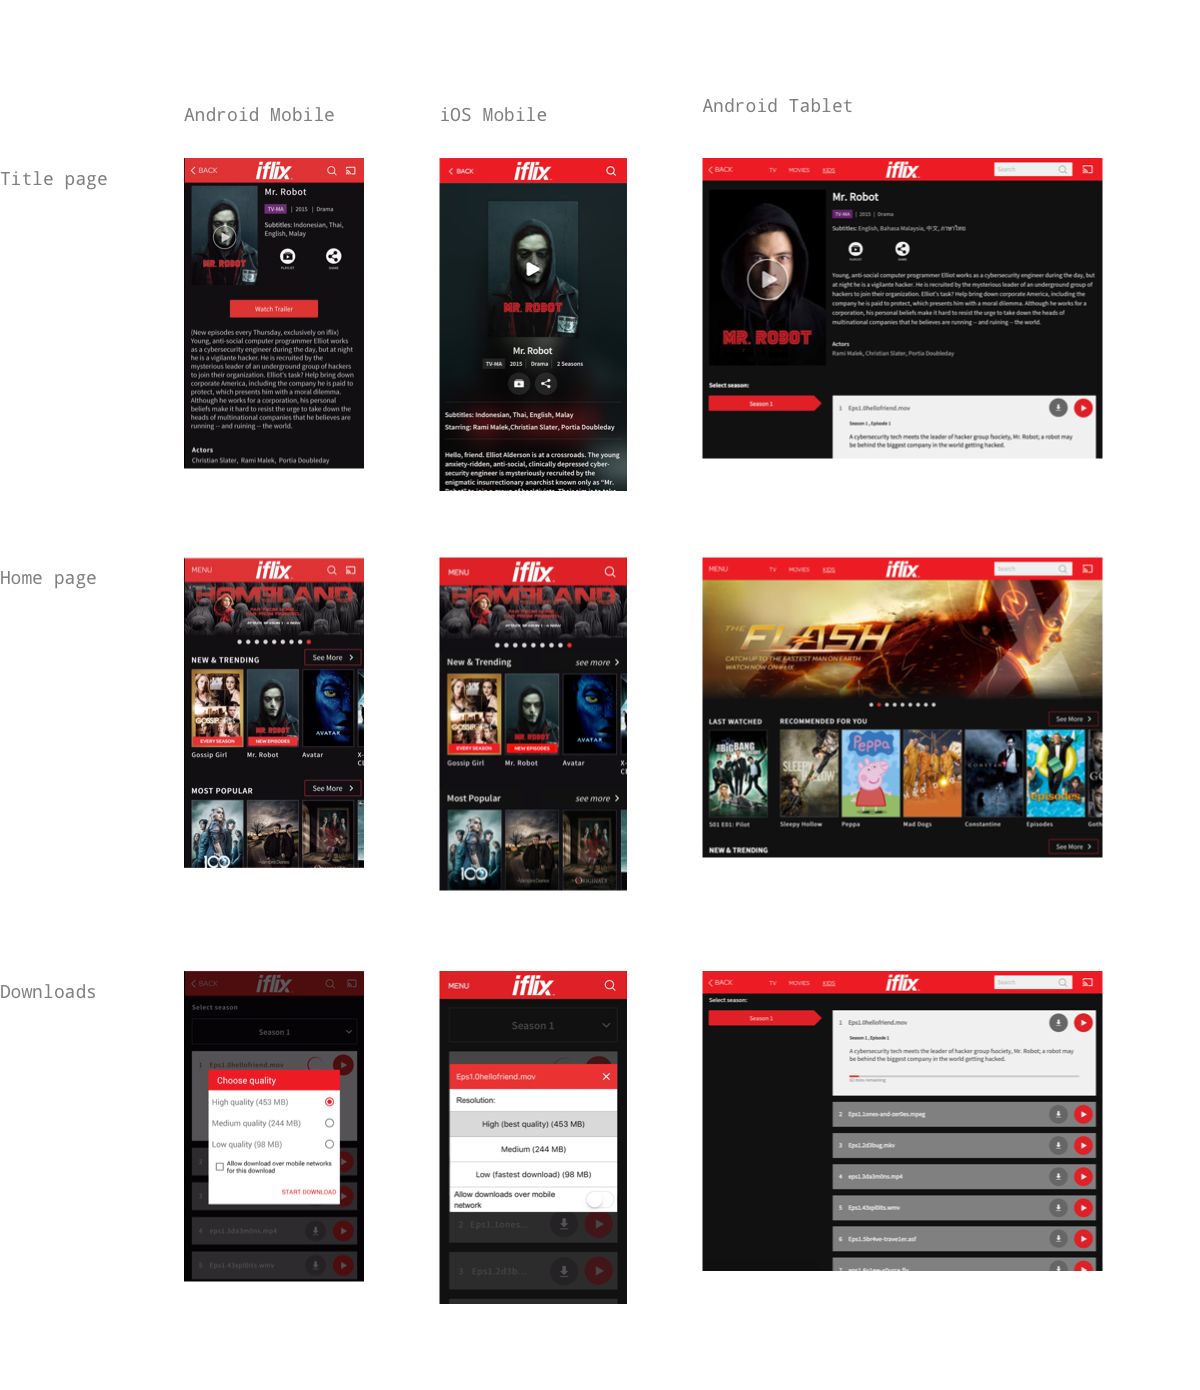 Screenshots of iflix's Android mobile, iOS mobile, and Android tablet apps, showing the home, title, and downloads screens.